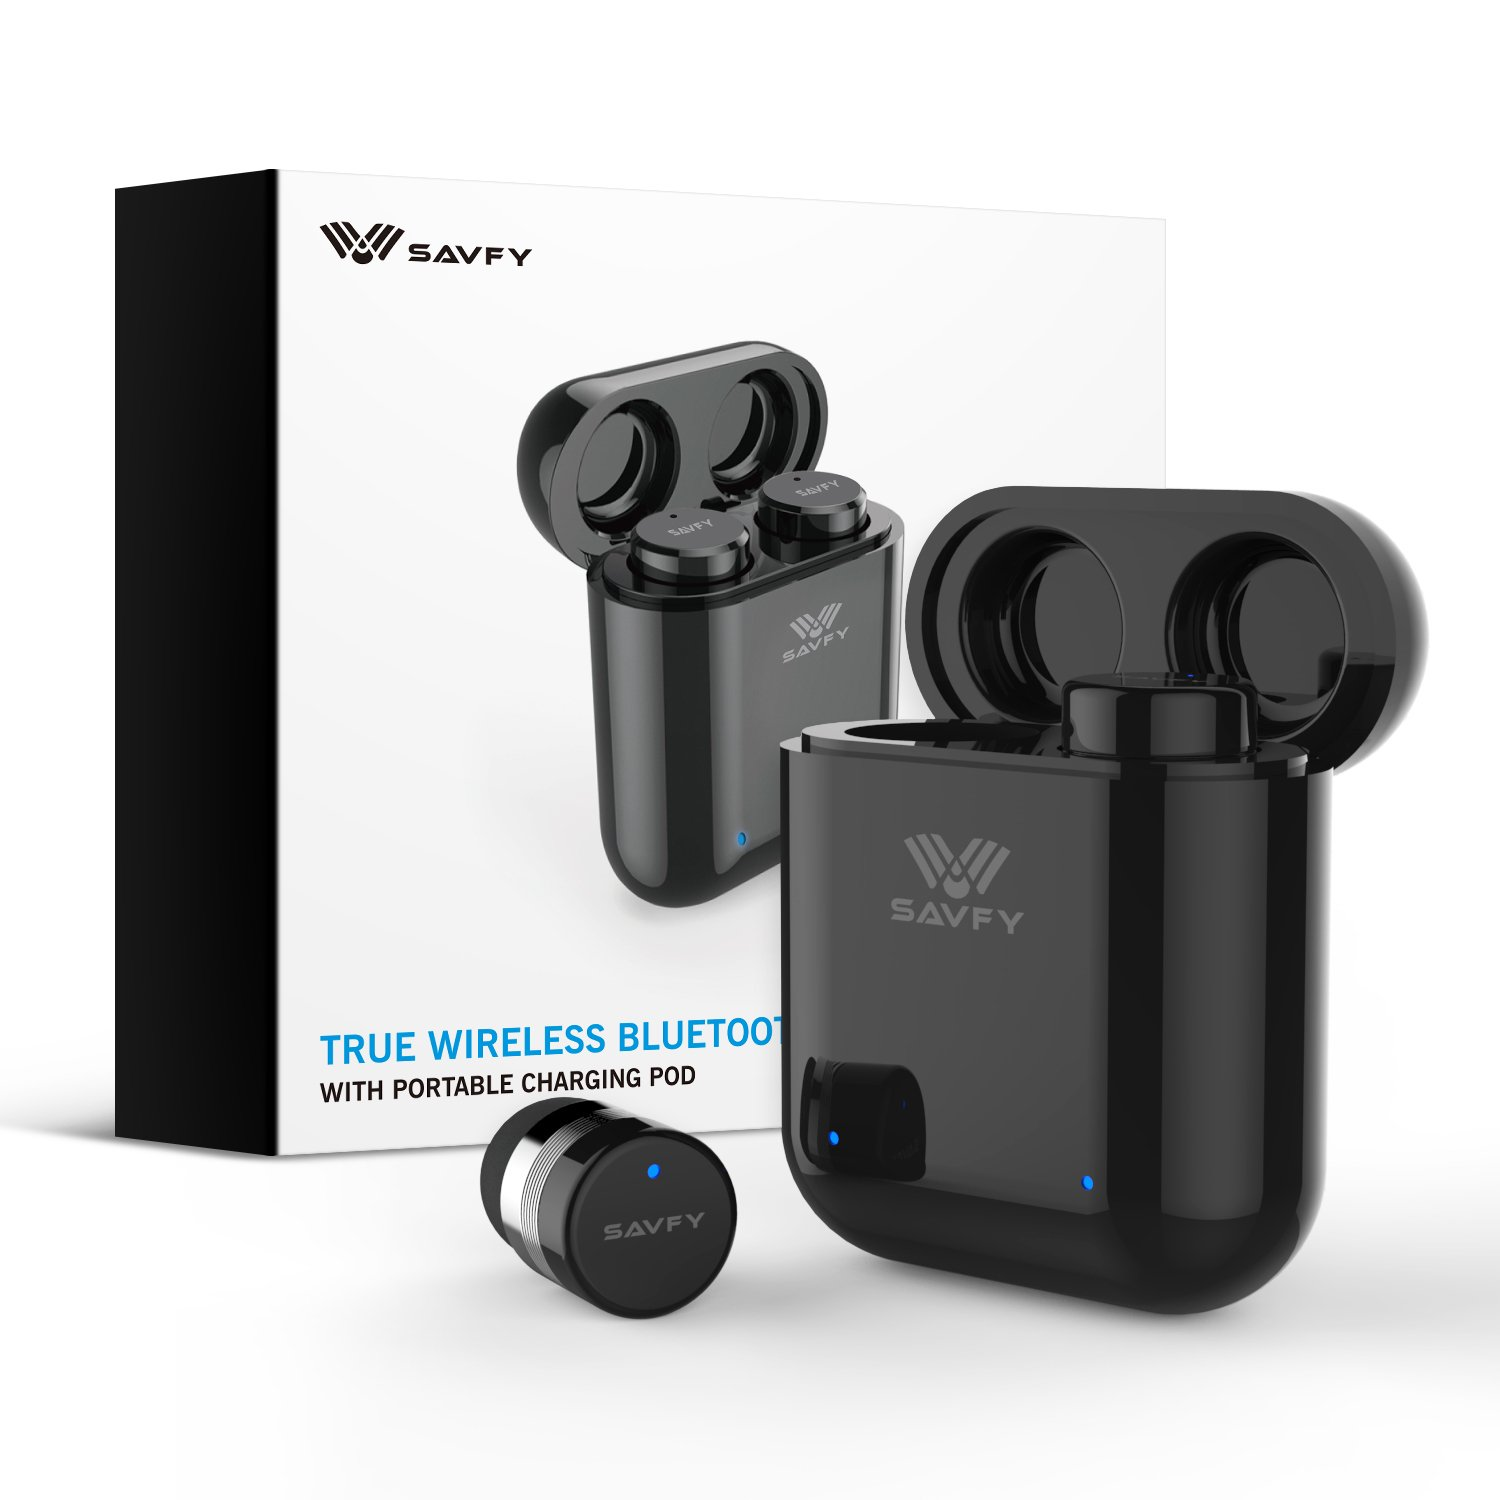 e334118d116 Amazon.com: Bluetooth Headphones, SAVFY Mini True Wireless Bluetooth  Earbuds Pair, Noise Cancelling Sweatproof Headset with Microphone and  400mAH Portable ...